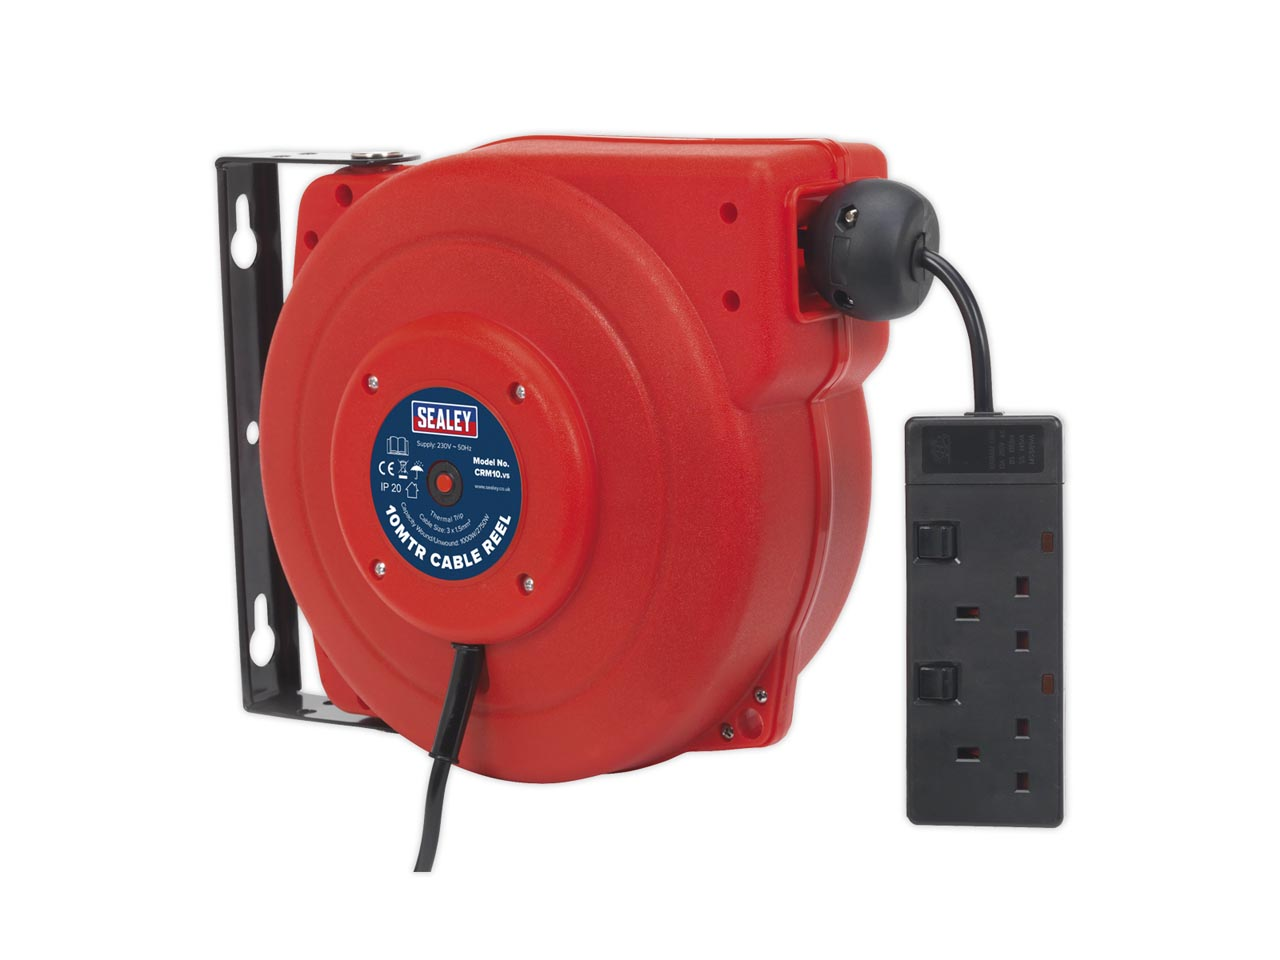 Cable Reels and Extension Leads